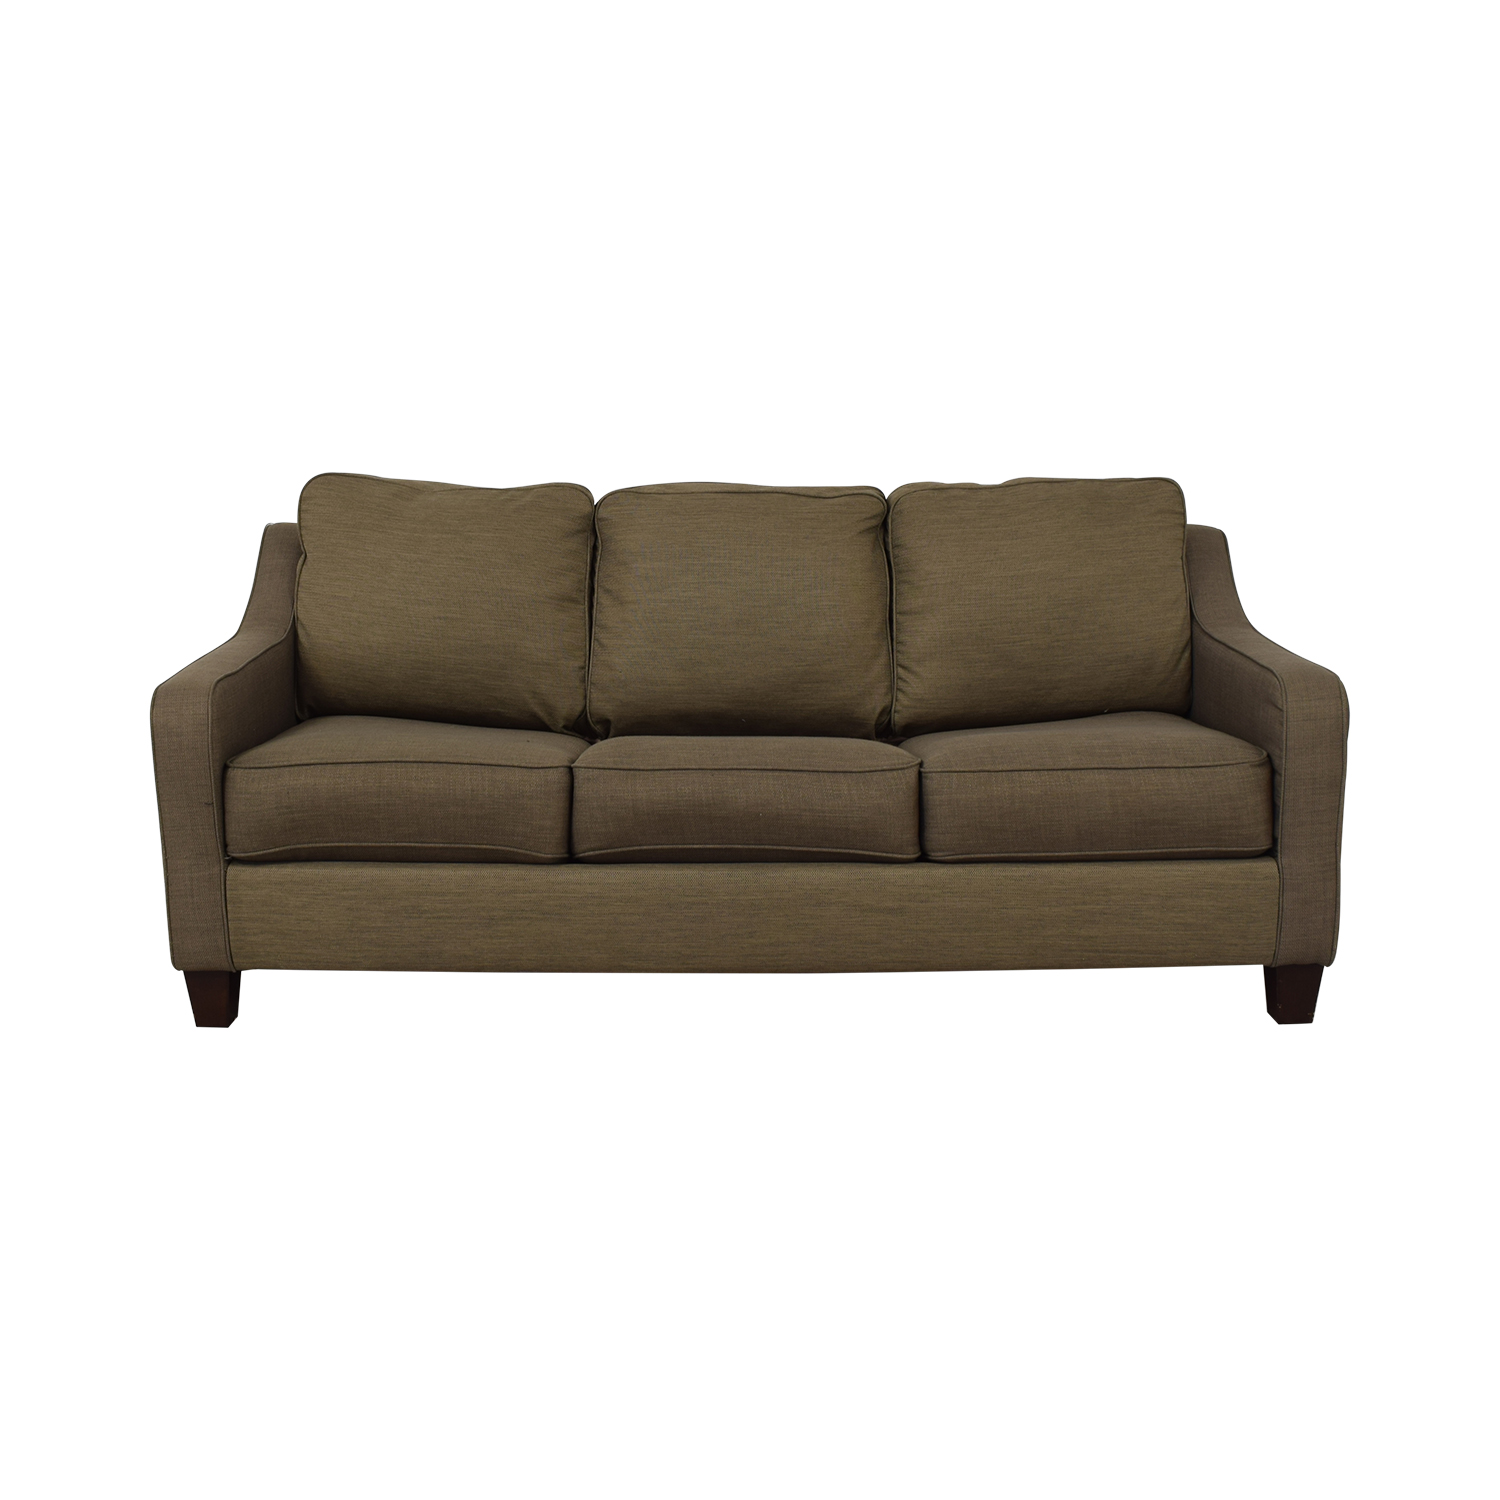 Jennifer Furniture Jennifer Furniture Convertible Sofa Queen Bed coupon